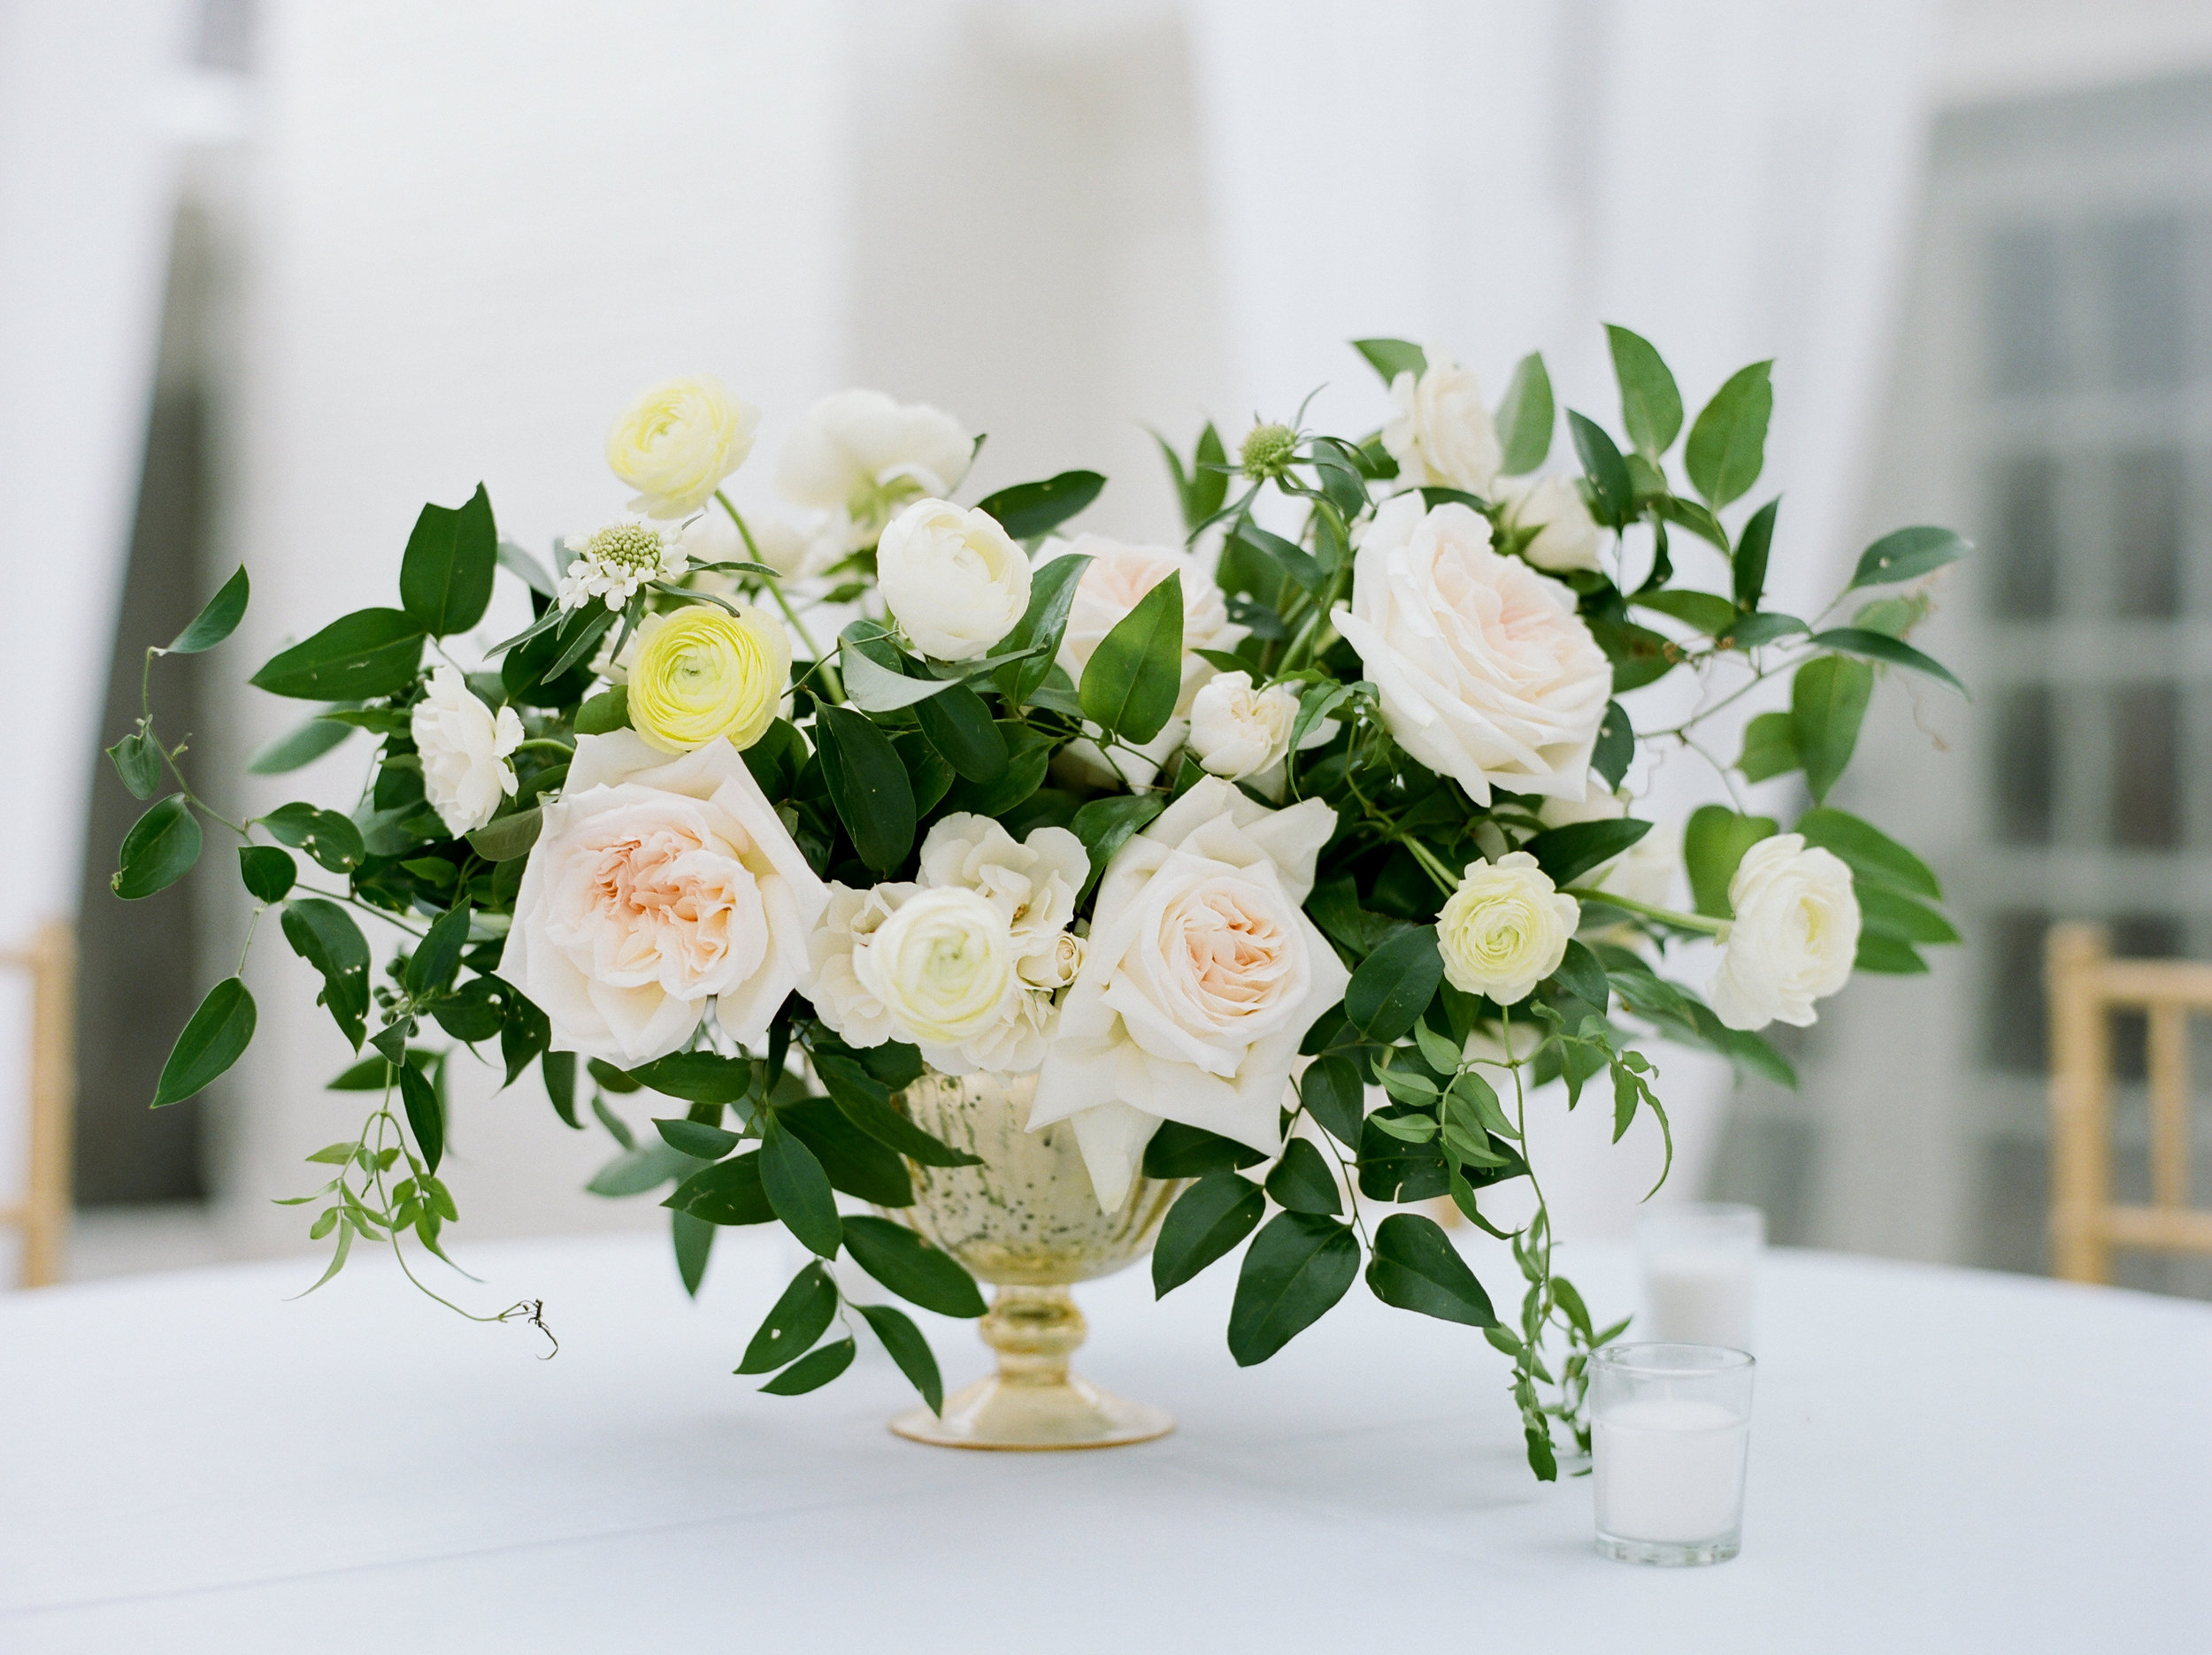 Ivory and white garden style floral | Franzie's Flowers in Houston